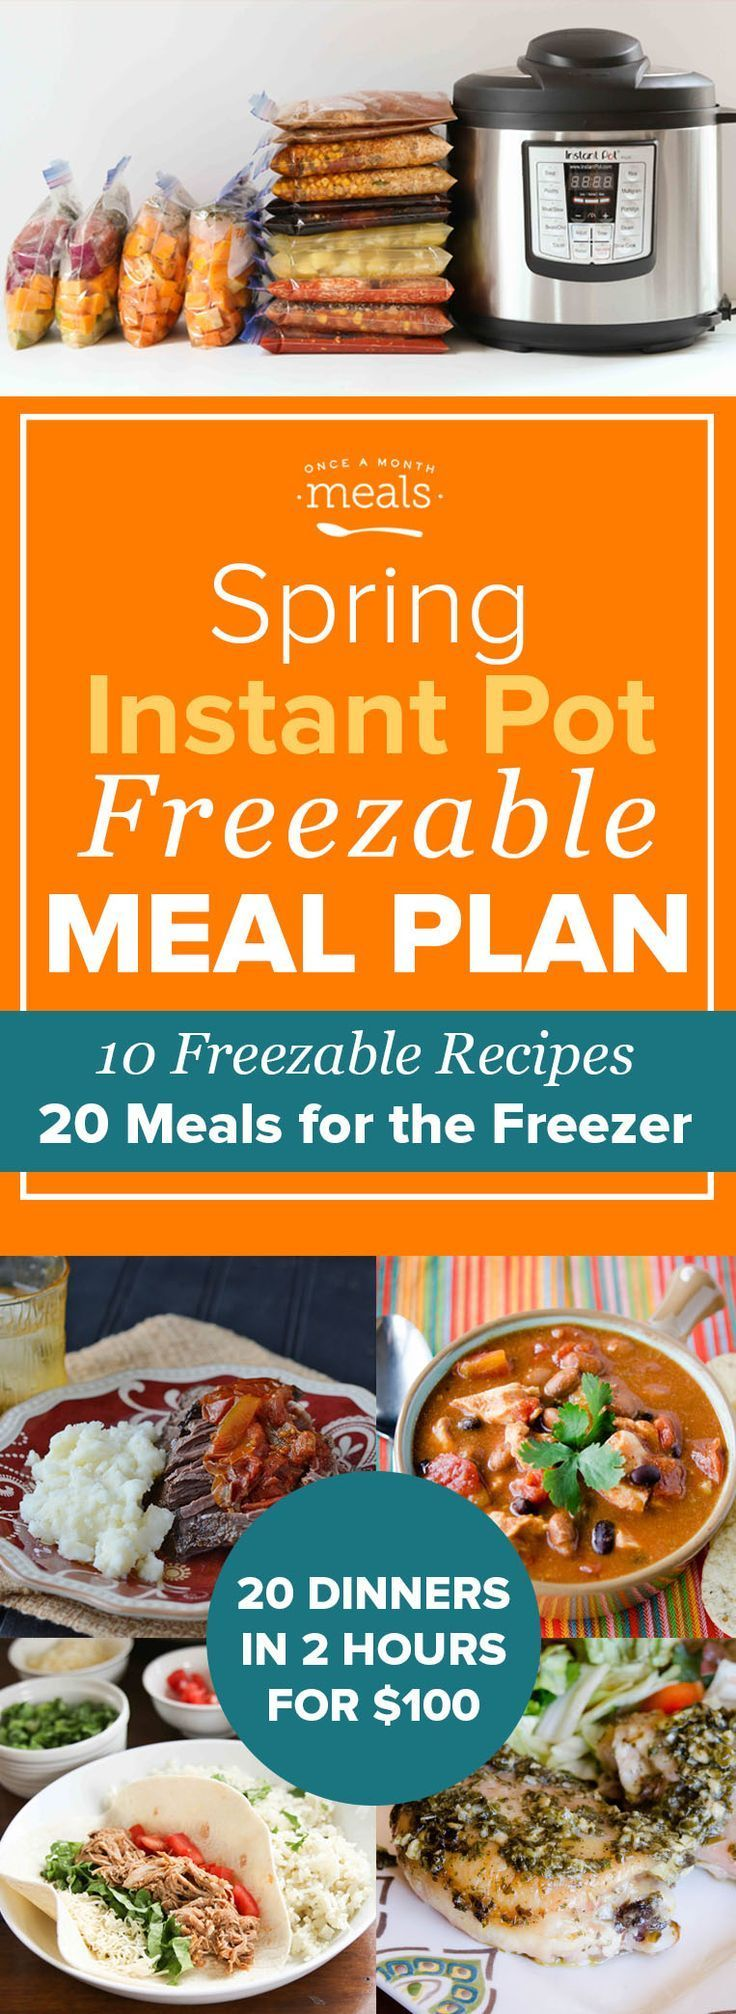 Shop, prep, and assemble 20 easy freezer meal dinners in